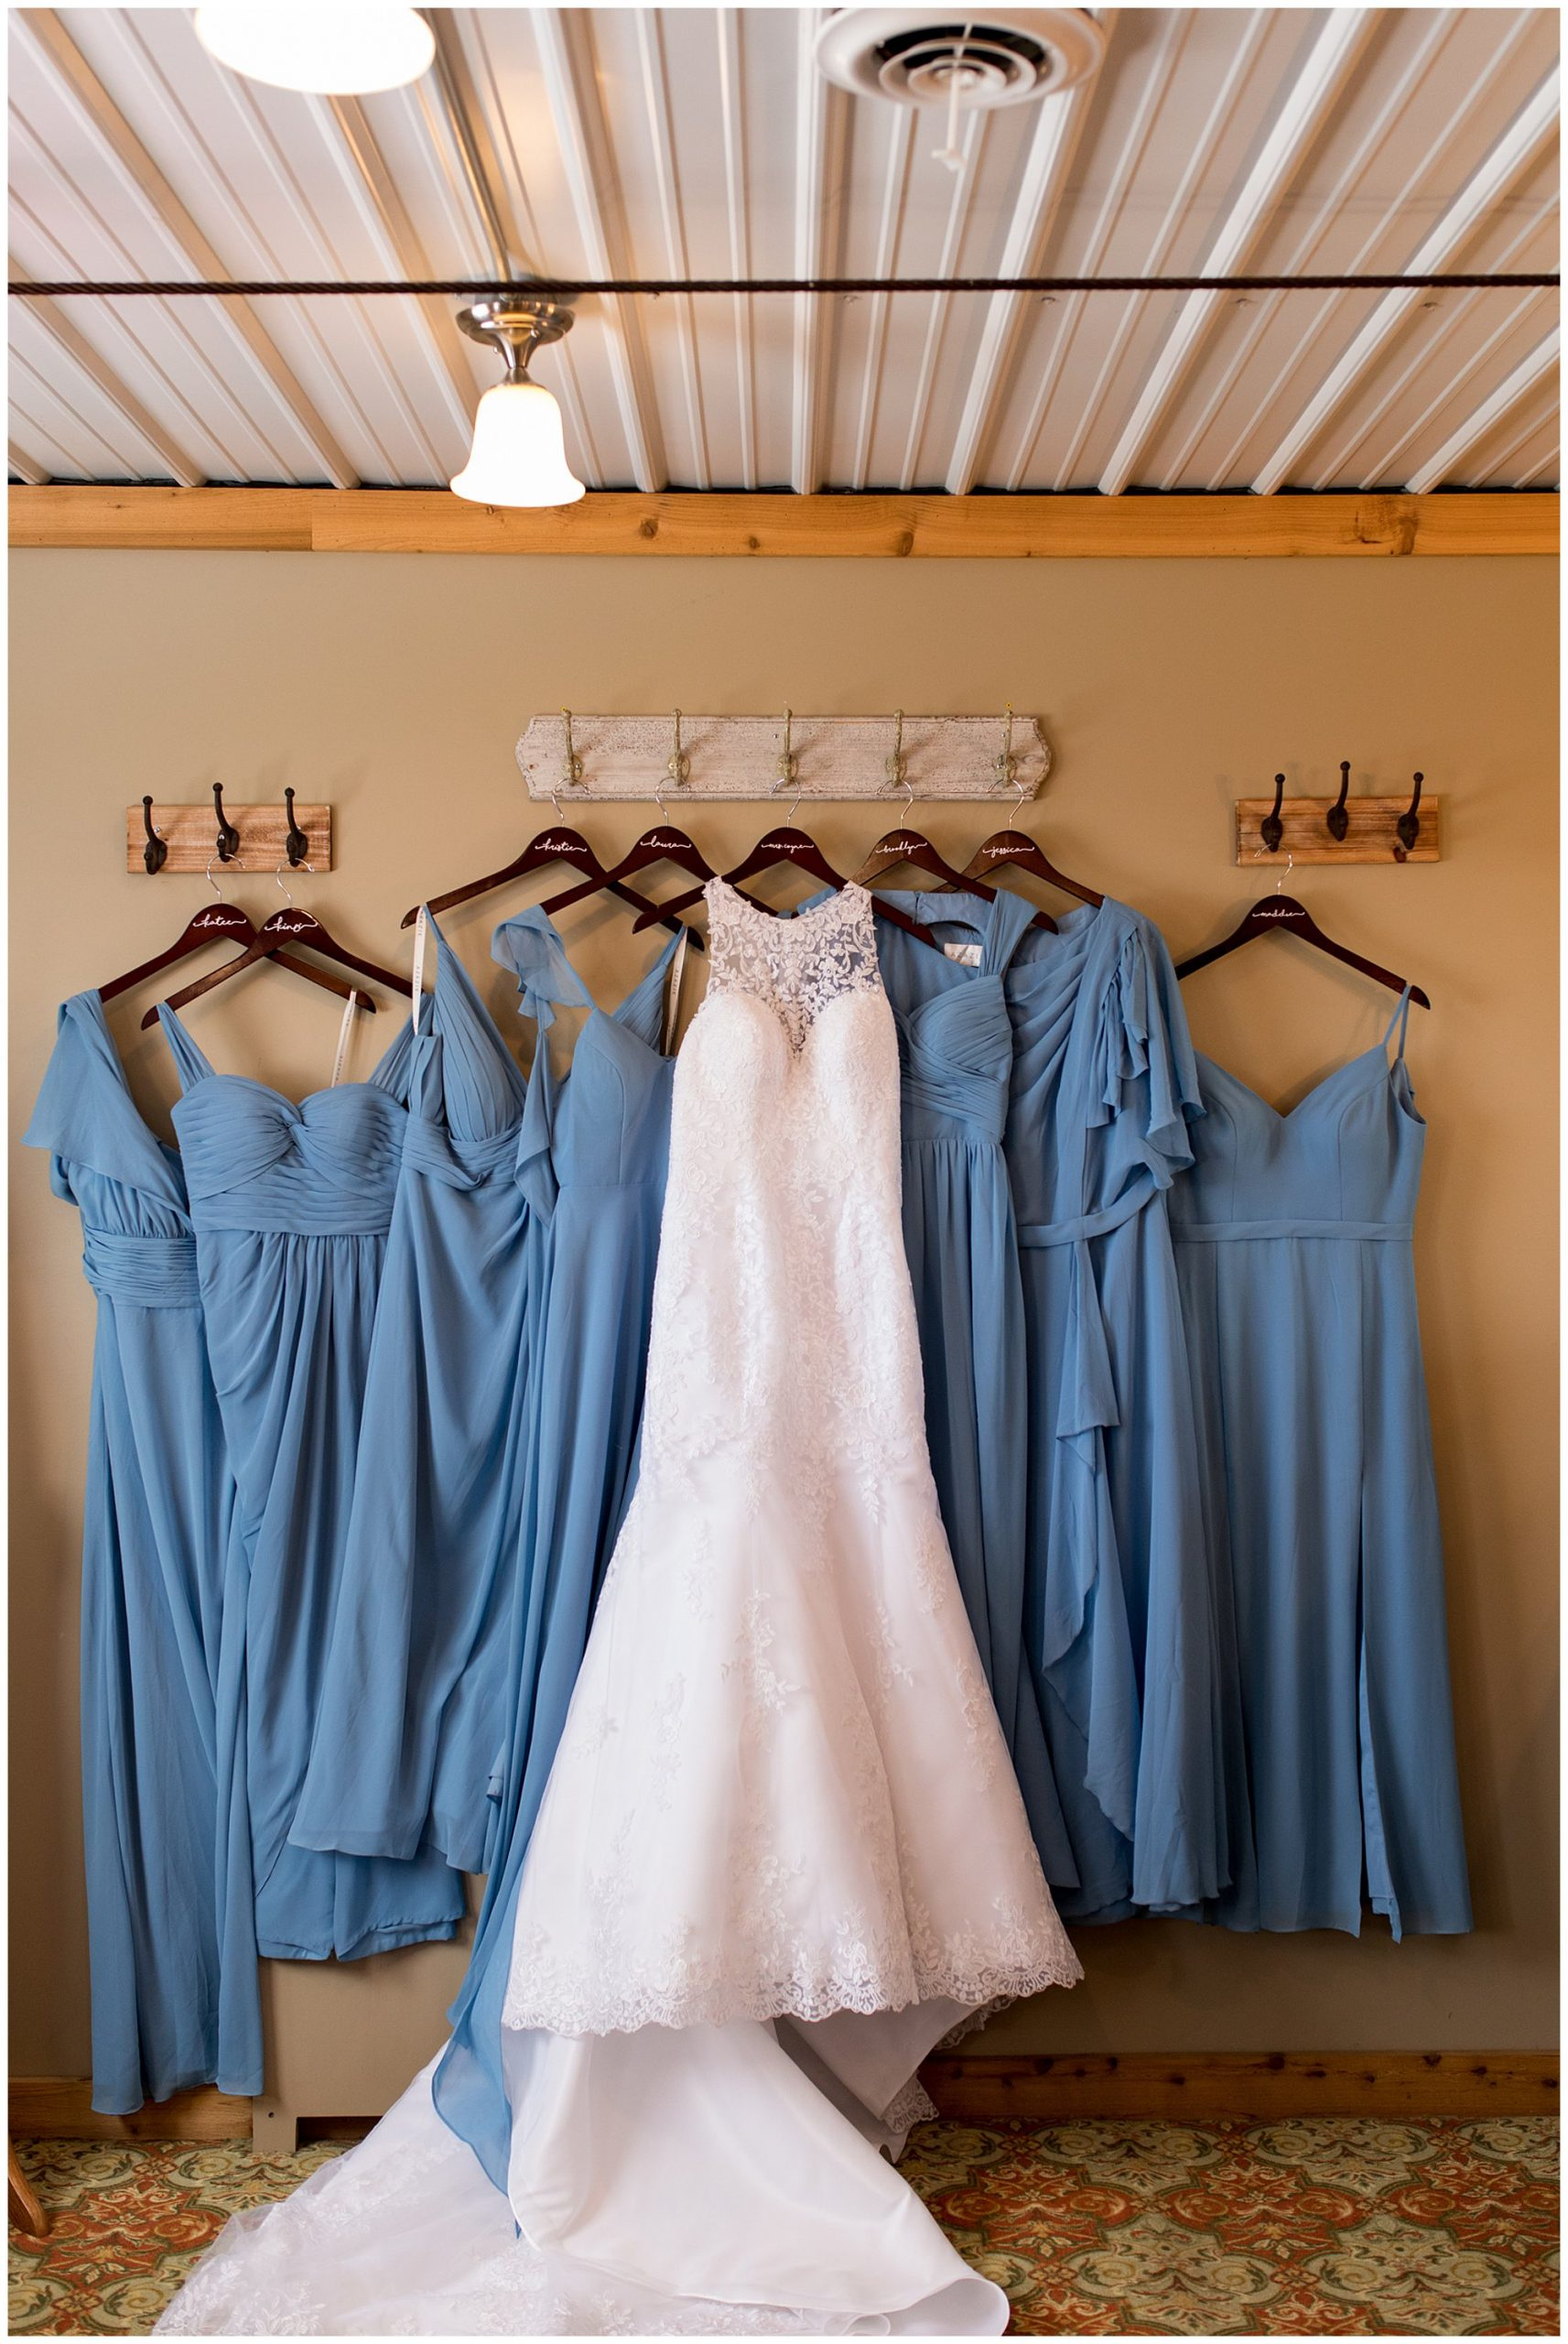 bride's wedding dress from Sophia's Bridal in Fishers with bridesmaids dresses